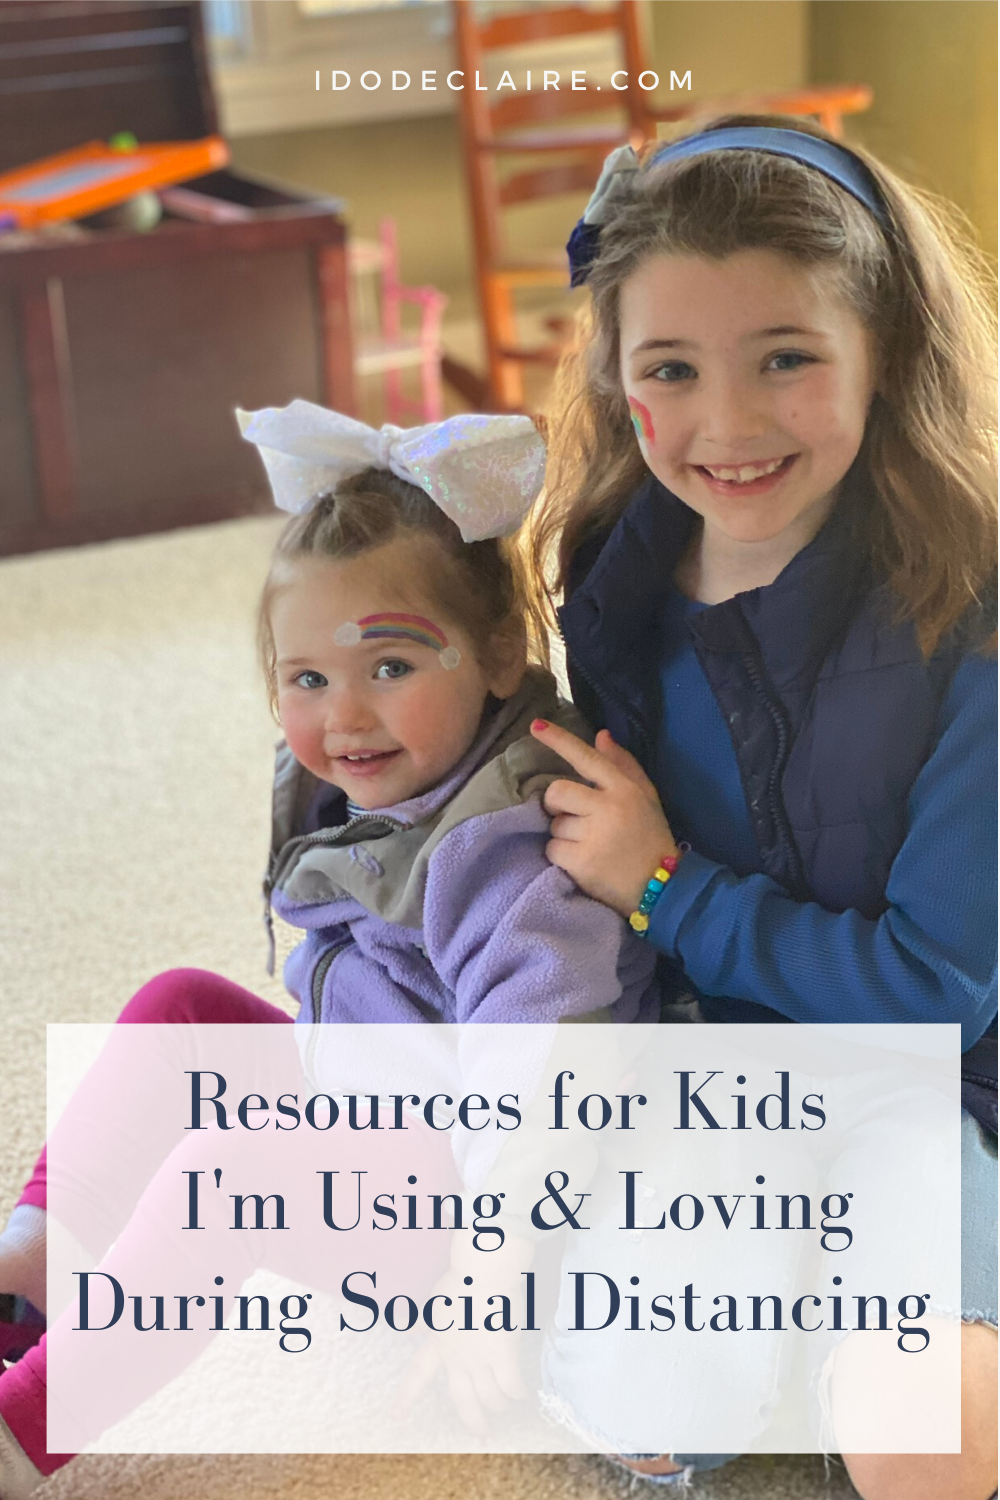 Resources for Kids I'm Using & Loving During Social Distancing